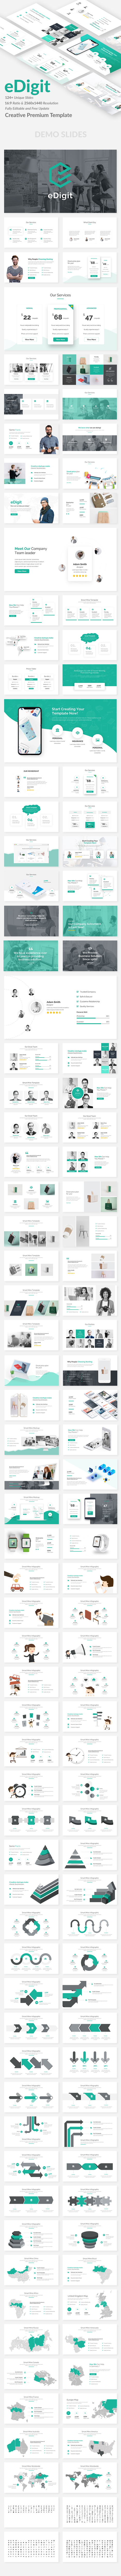 eDigit Proposal Creative Powerpoint Template - Creative PowerPoint Templates